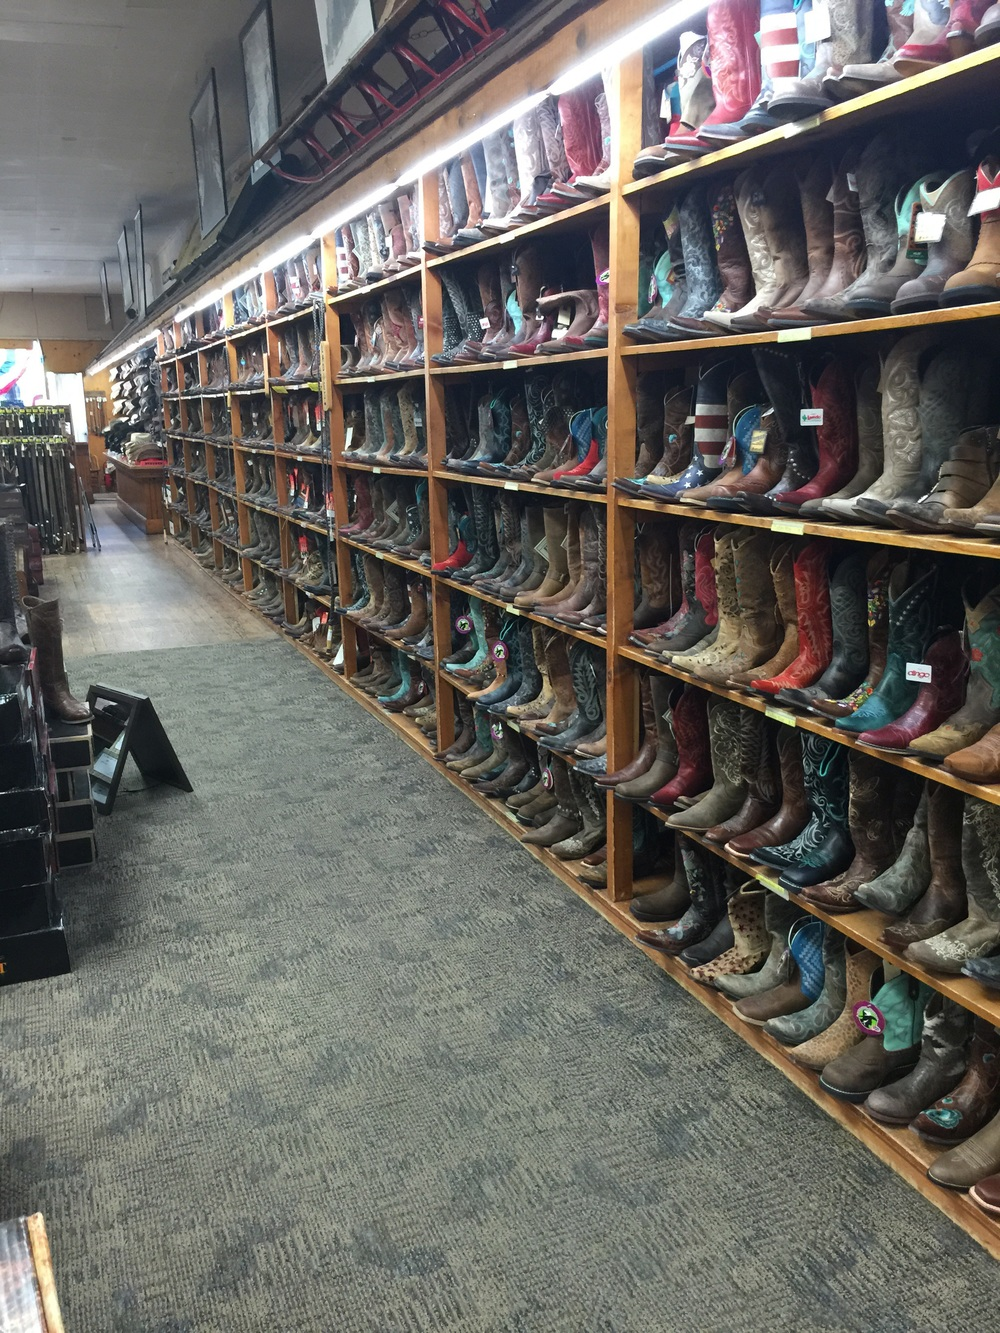 There had been billboards for this store for the past 150 miles. I had to check it out. They had a ton of cowboy boots and hats.